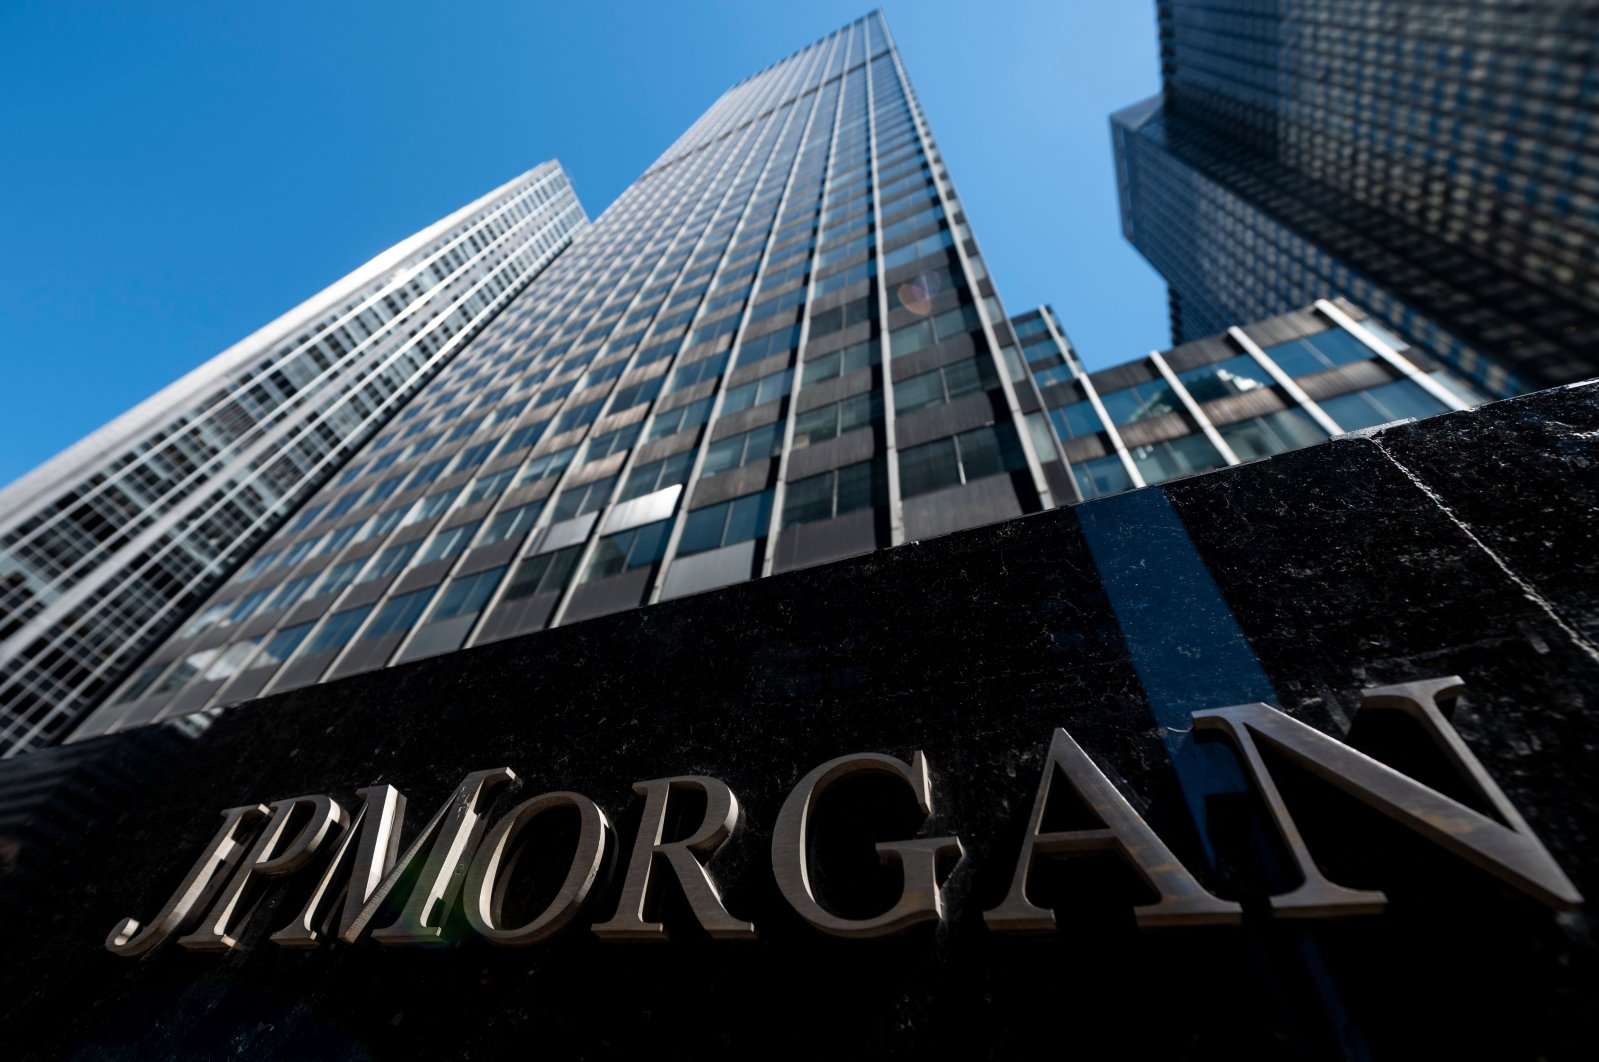 The JPMorgan Chase & Co. World headquarters in New York City, U.S., April 17, 2019. (AFP Photo)